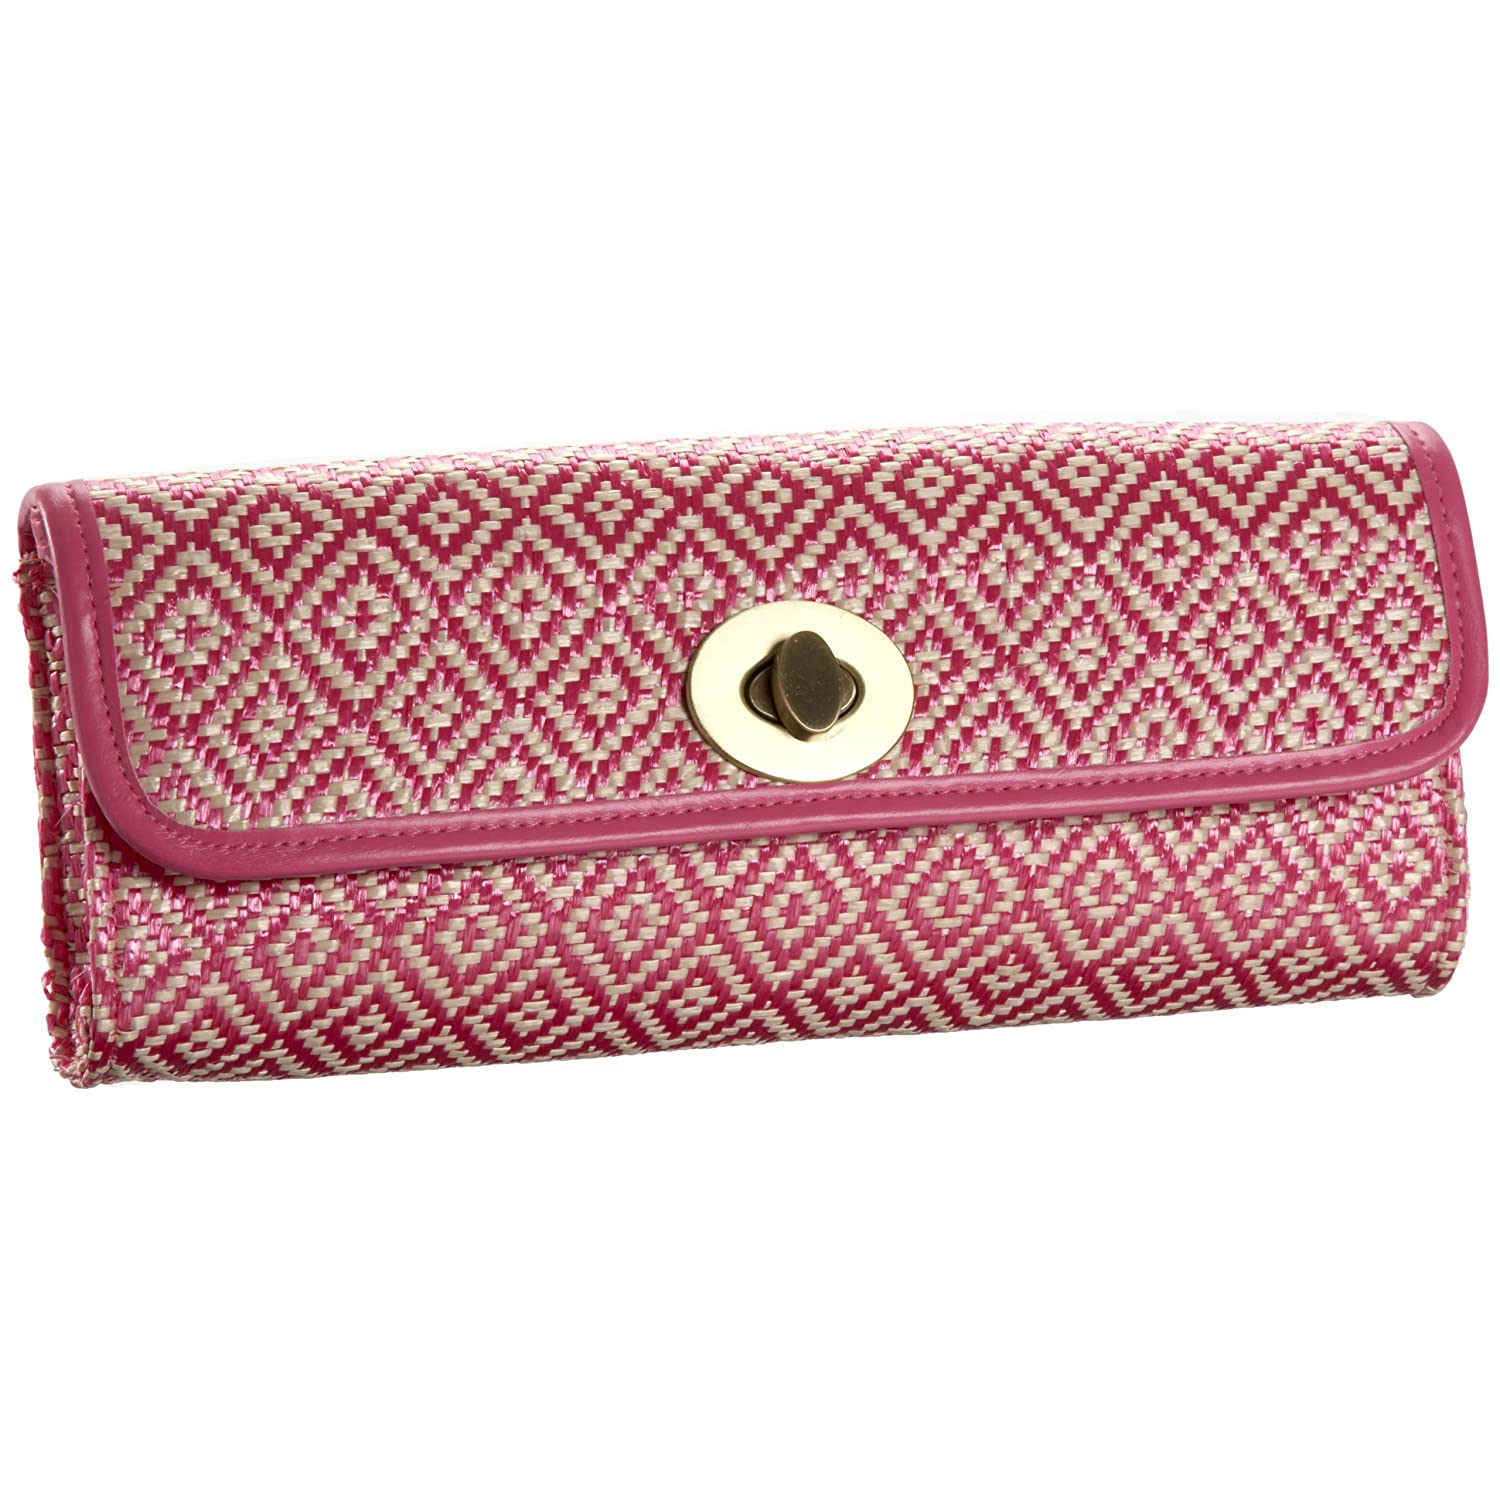 BIG BUDDHA - Mission Clutch from endless.com